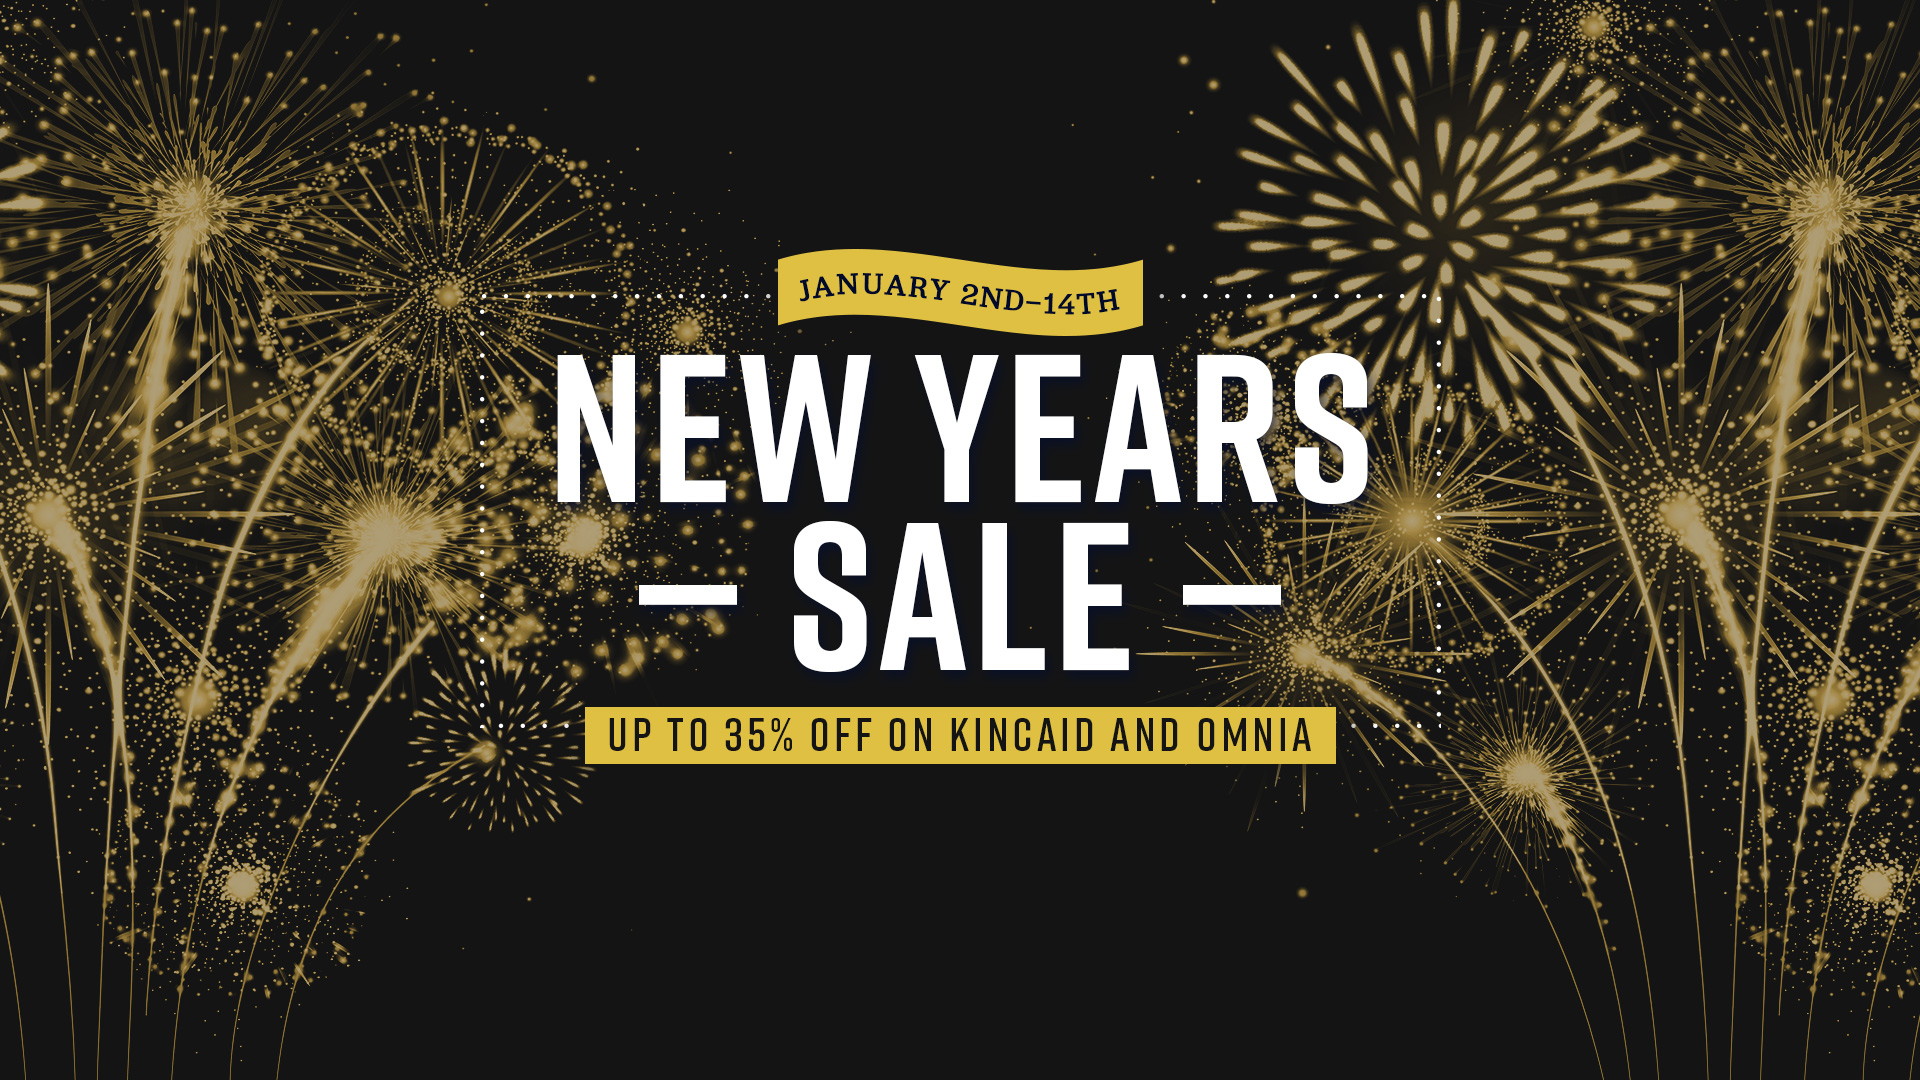 New Years 2021 Chattanooga Furniture Sale